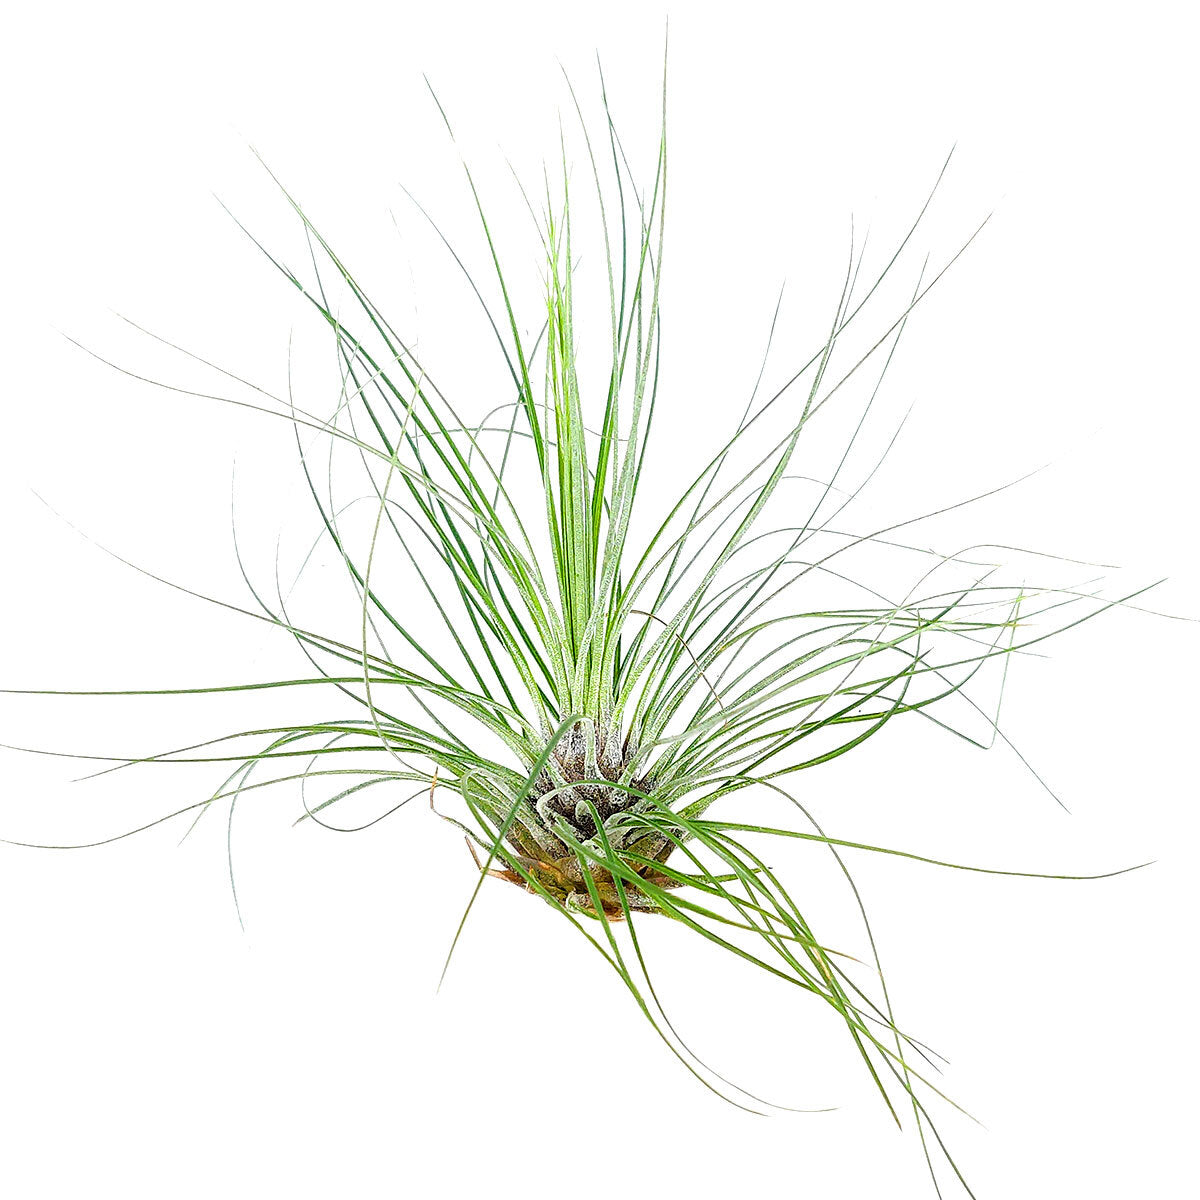 Tillandsia Filifolia air plant for sale, How to care for Tillandsia Filifolia air plant, air plant gift decor ideas, Growing Tillandsia Filifolia air plant